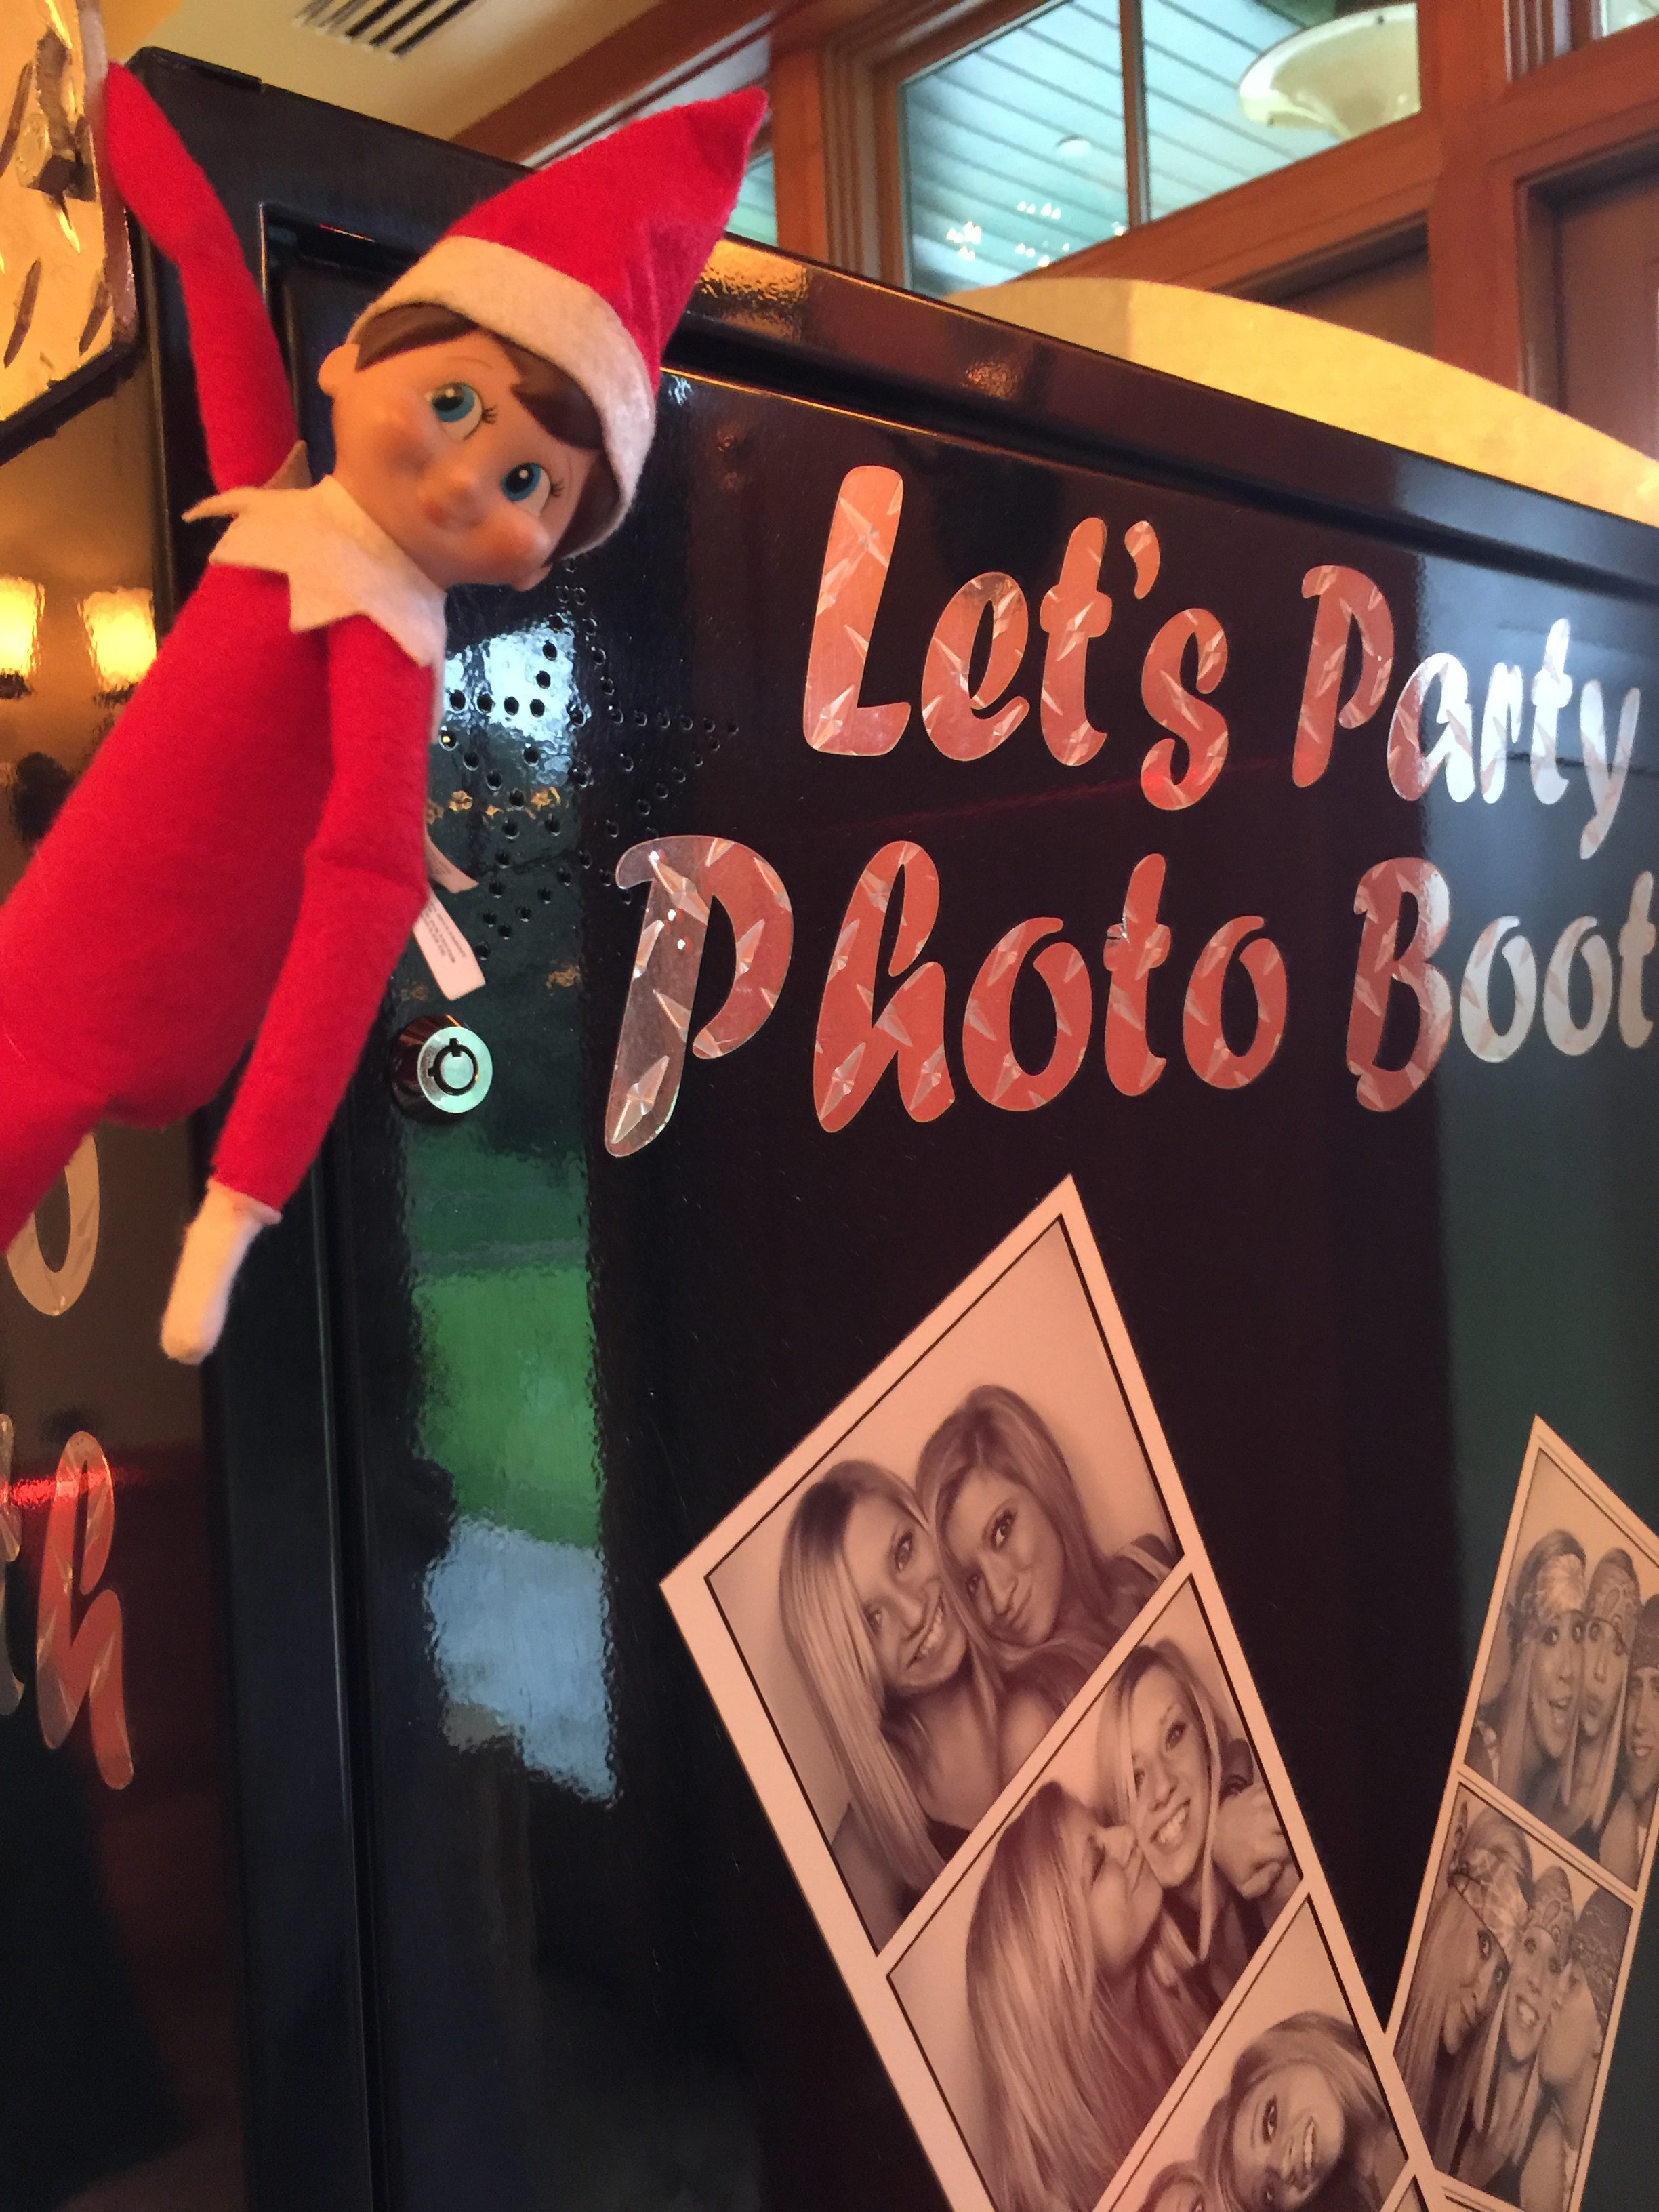 classic photo booth rental bay area - Over 21 Party Rentals